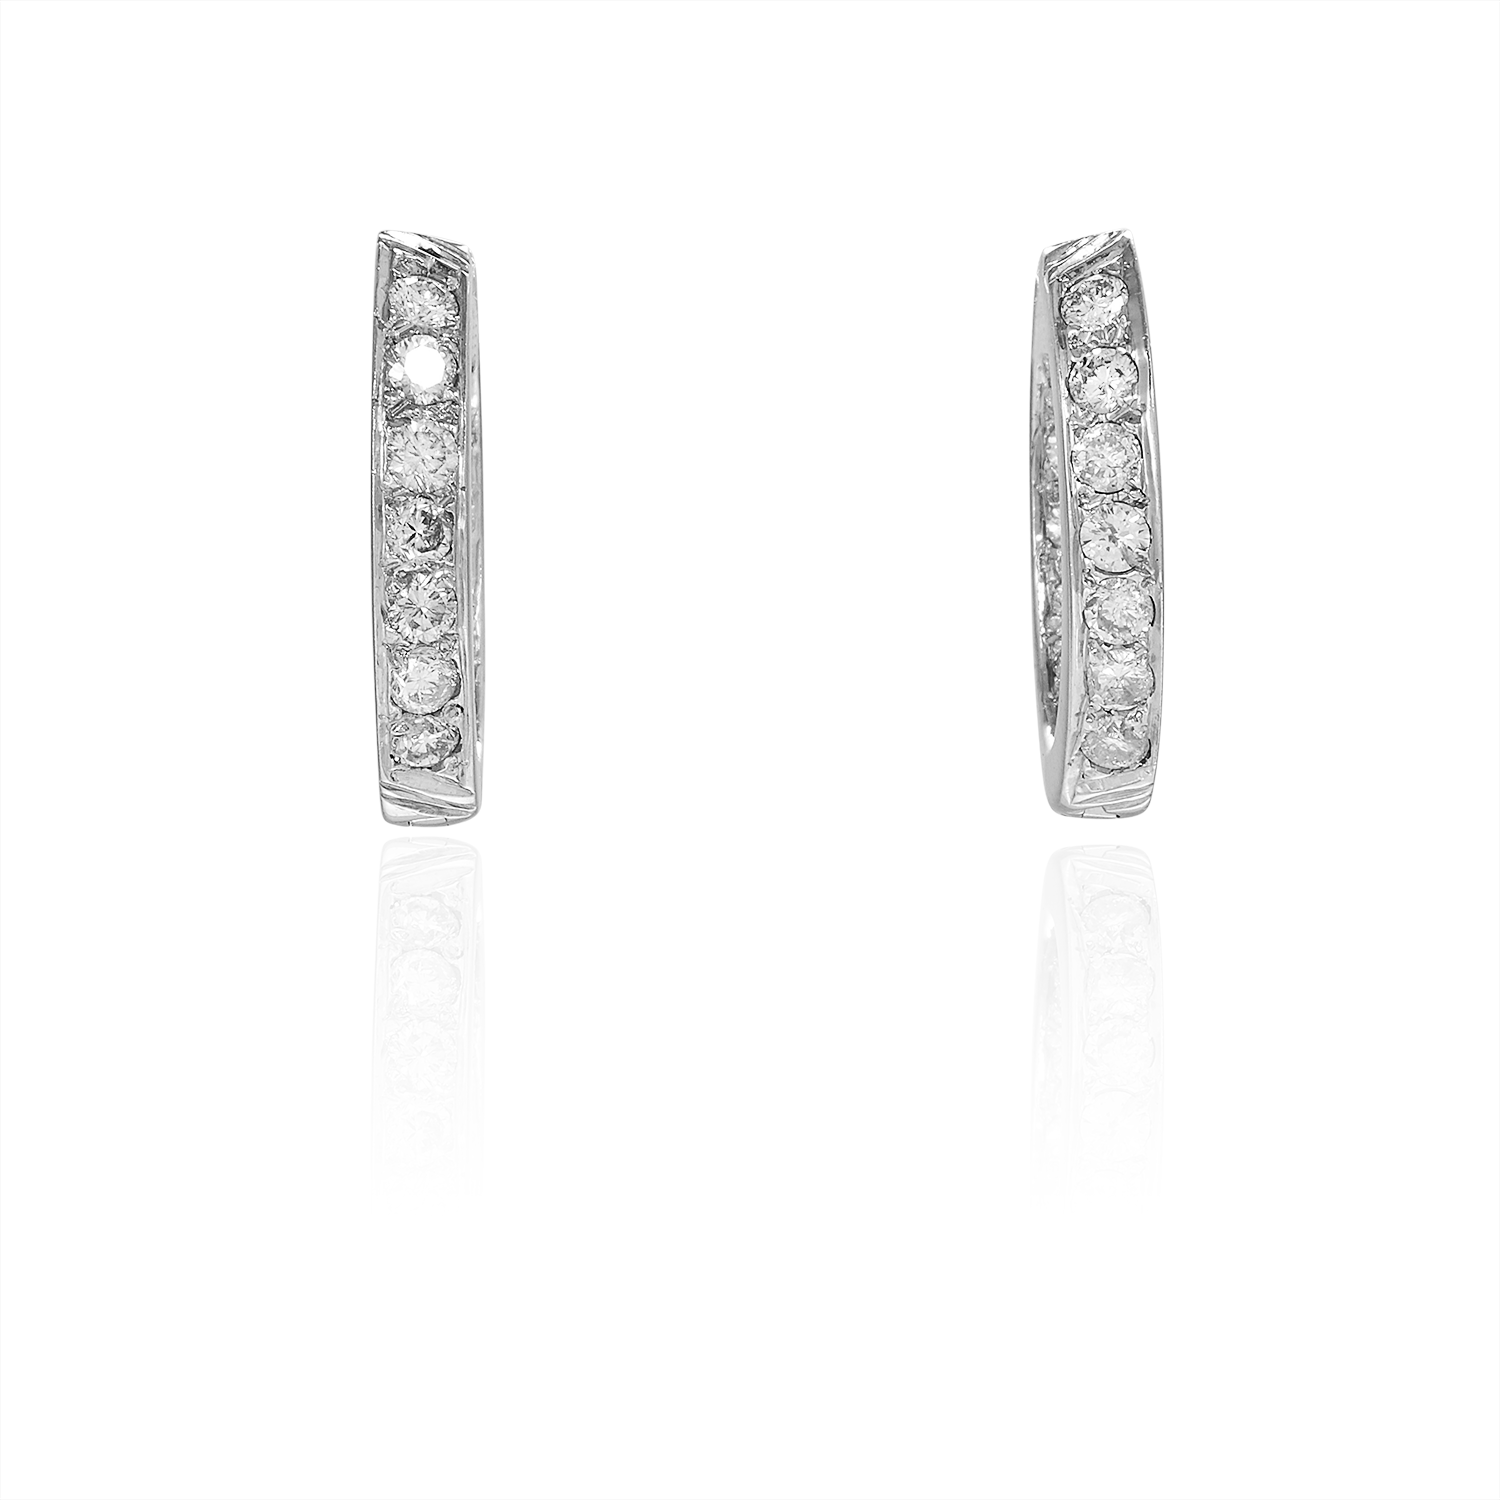 A PAIR OF DIAMOND HOOP EARRINGS in 18ct white gold, each designed as a full hoop set with round